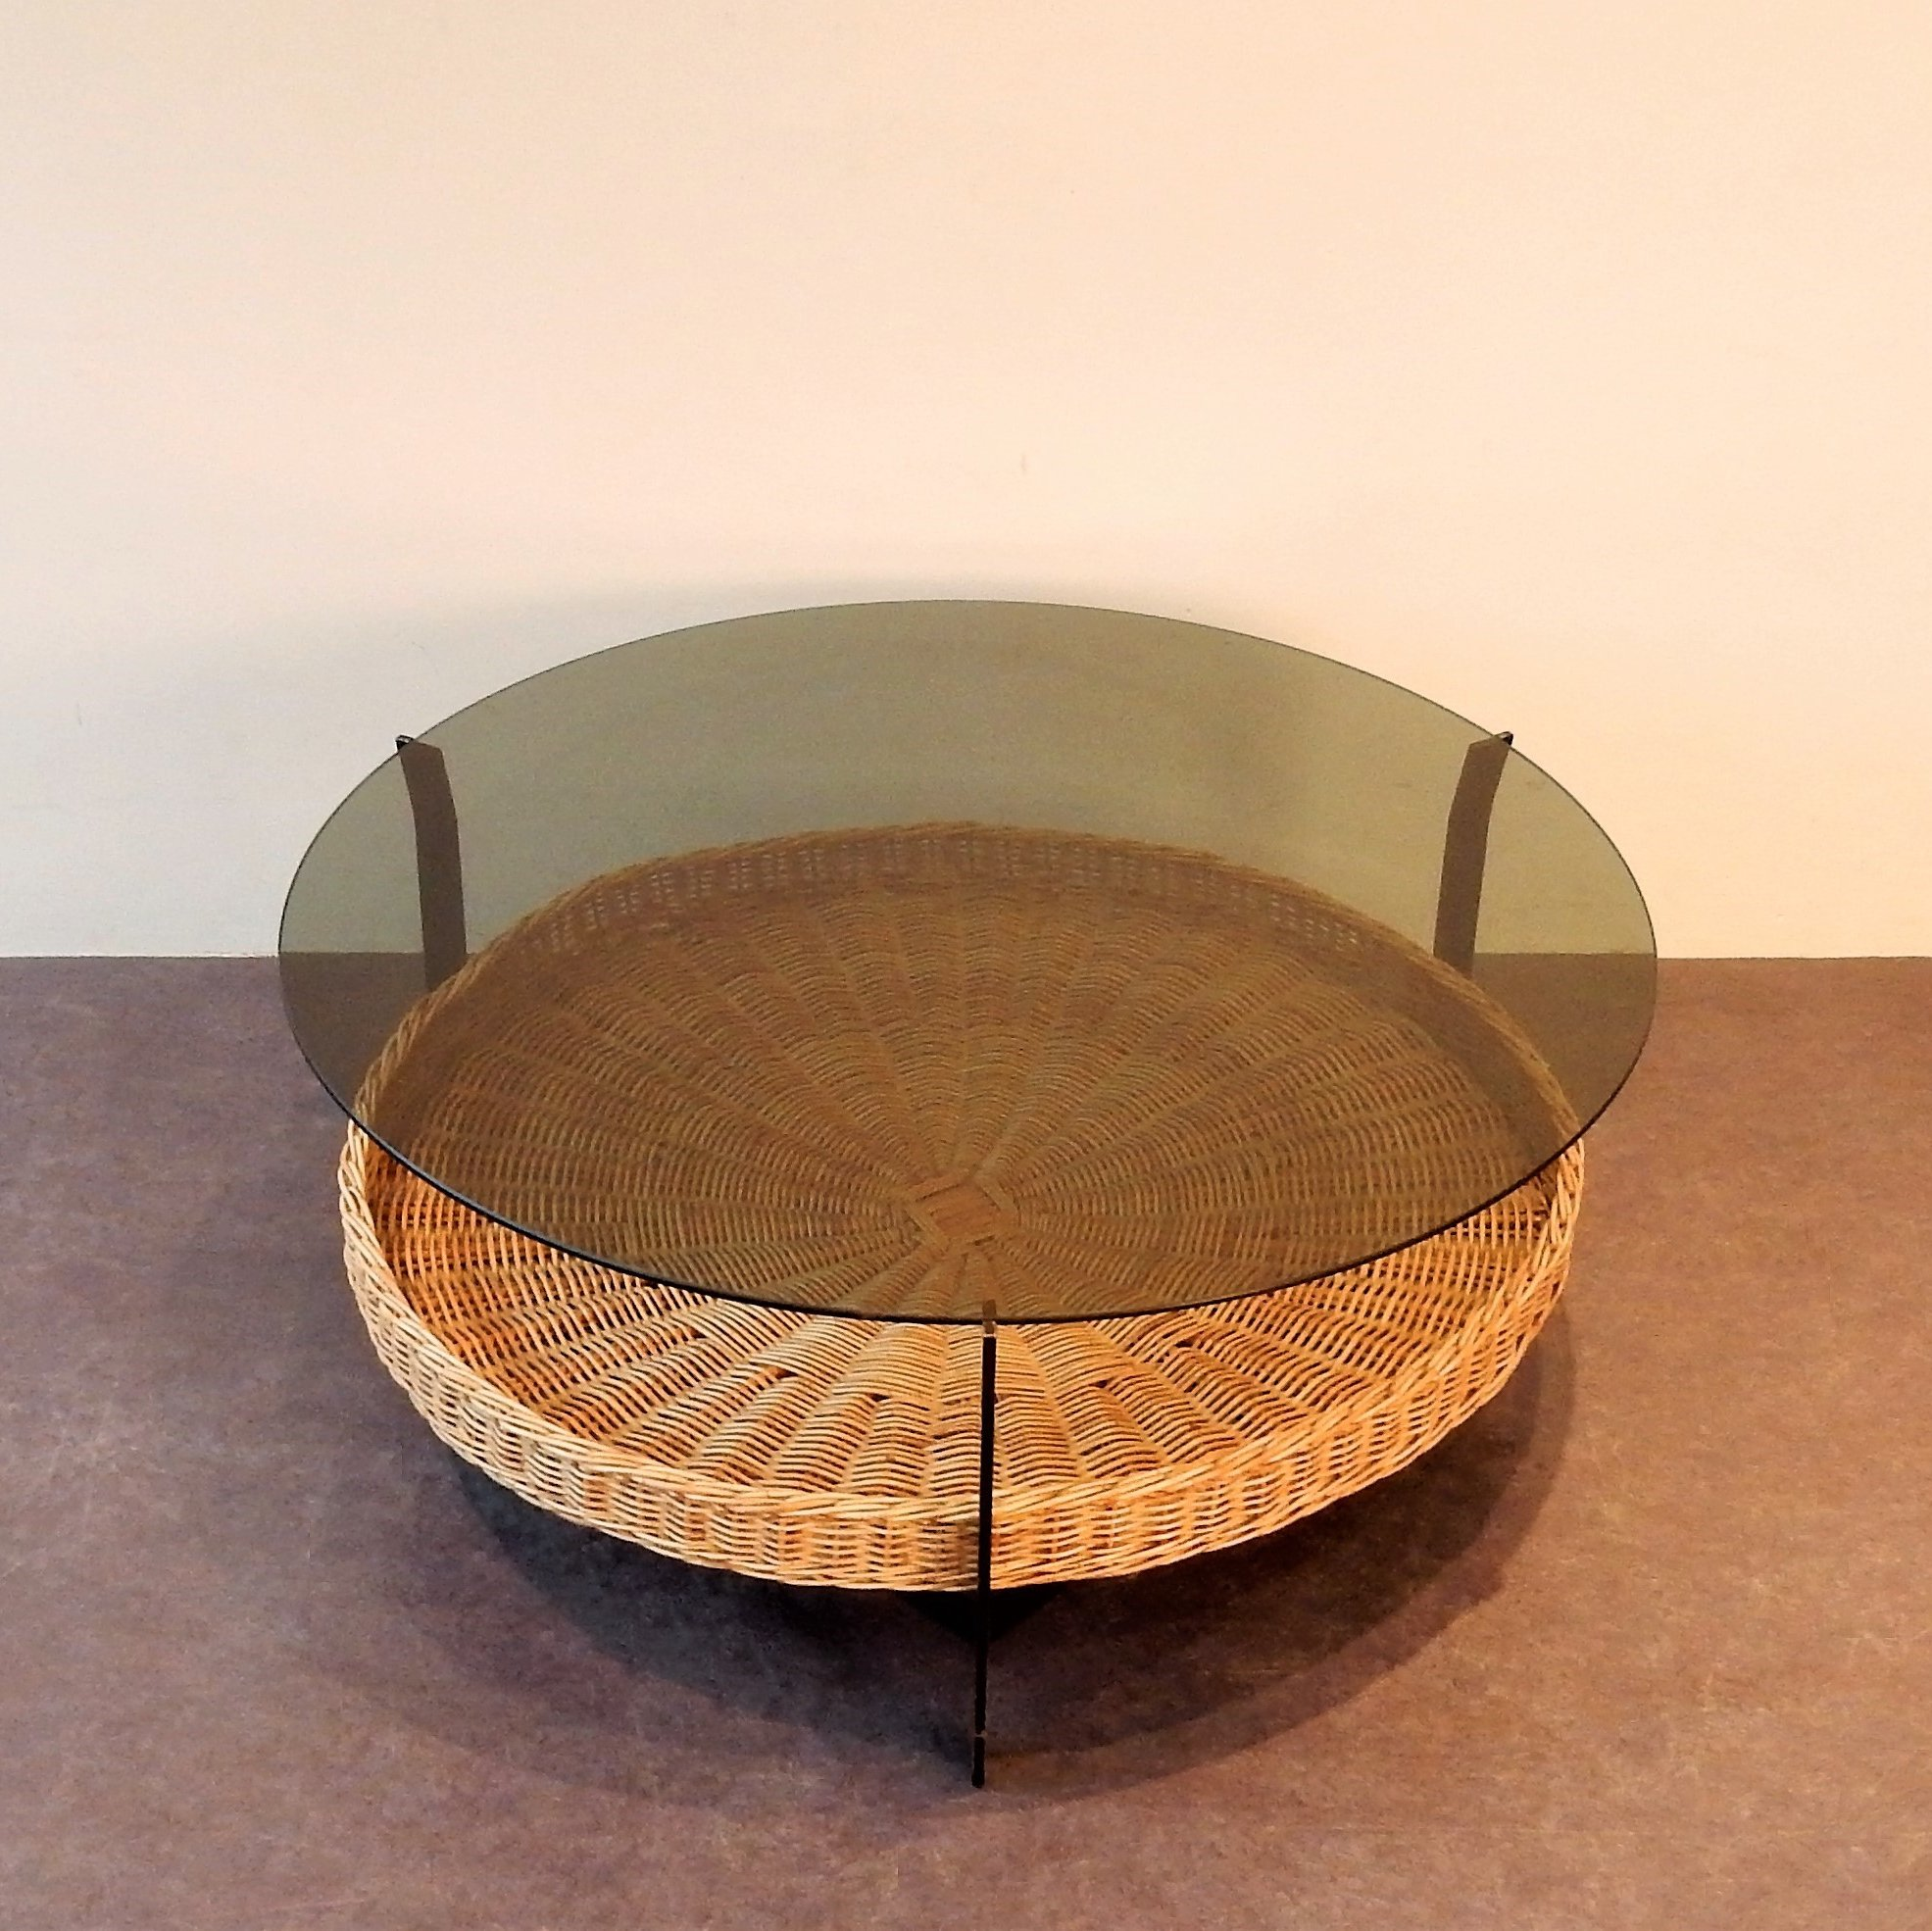 Vintage Coffee Table With A Metal Frame Wicker Basket Glass Top Netherlands 1970s 119913